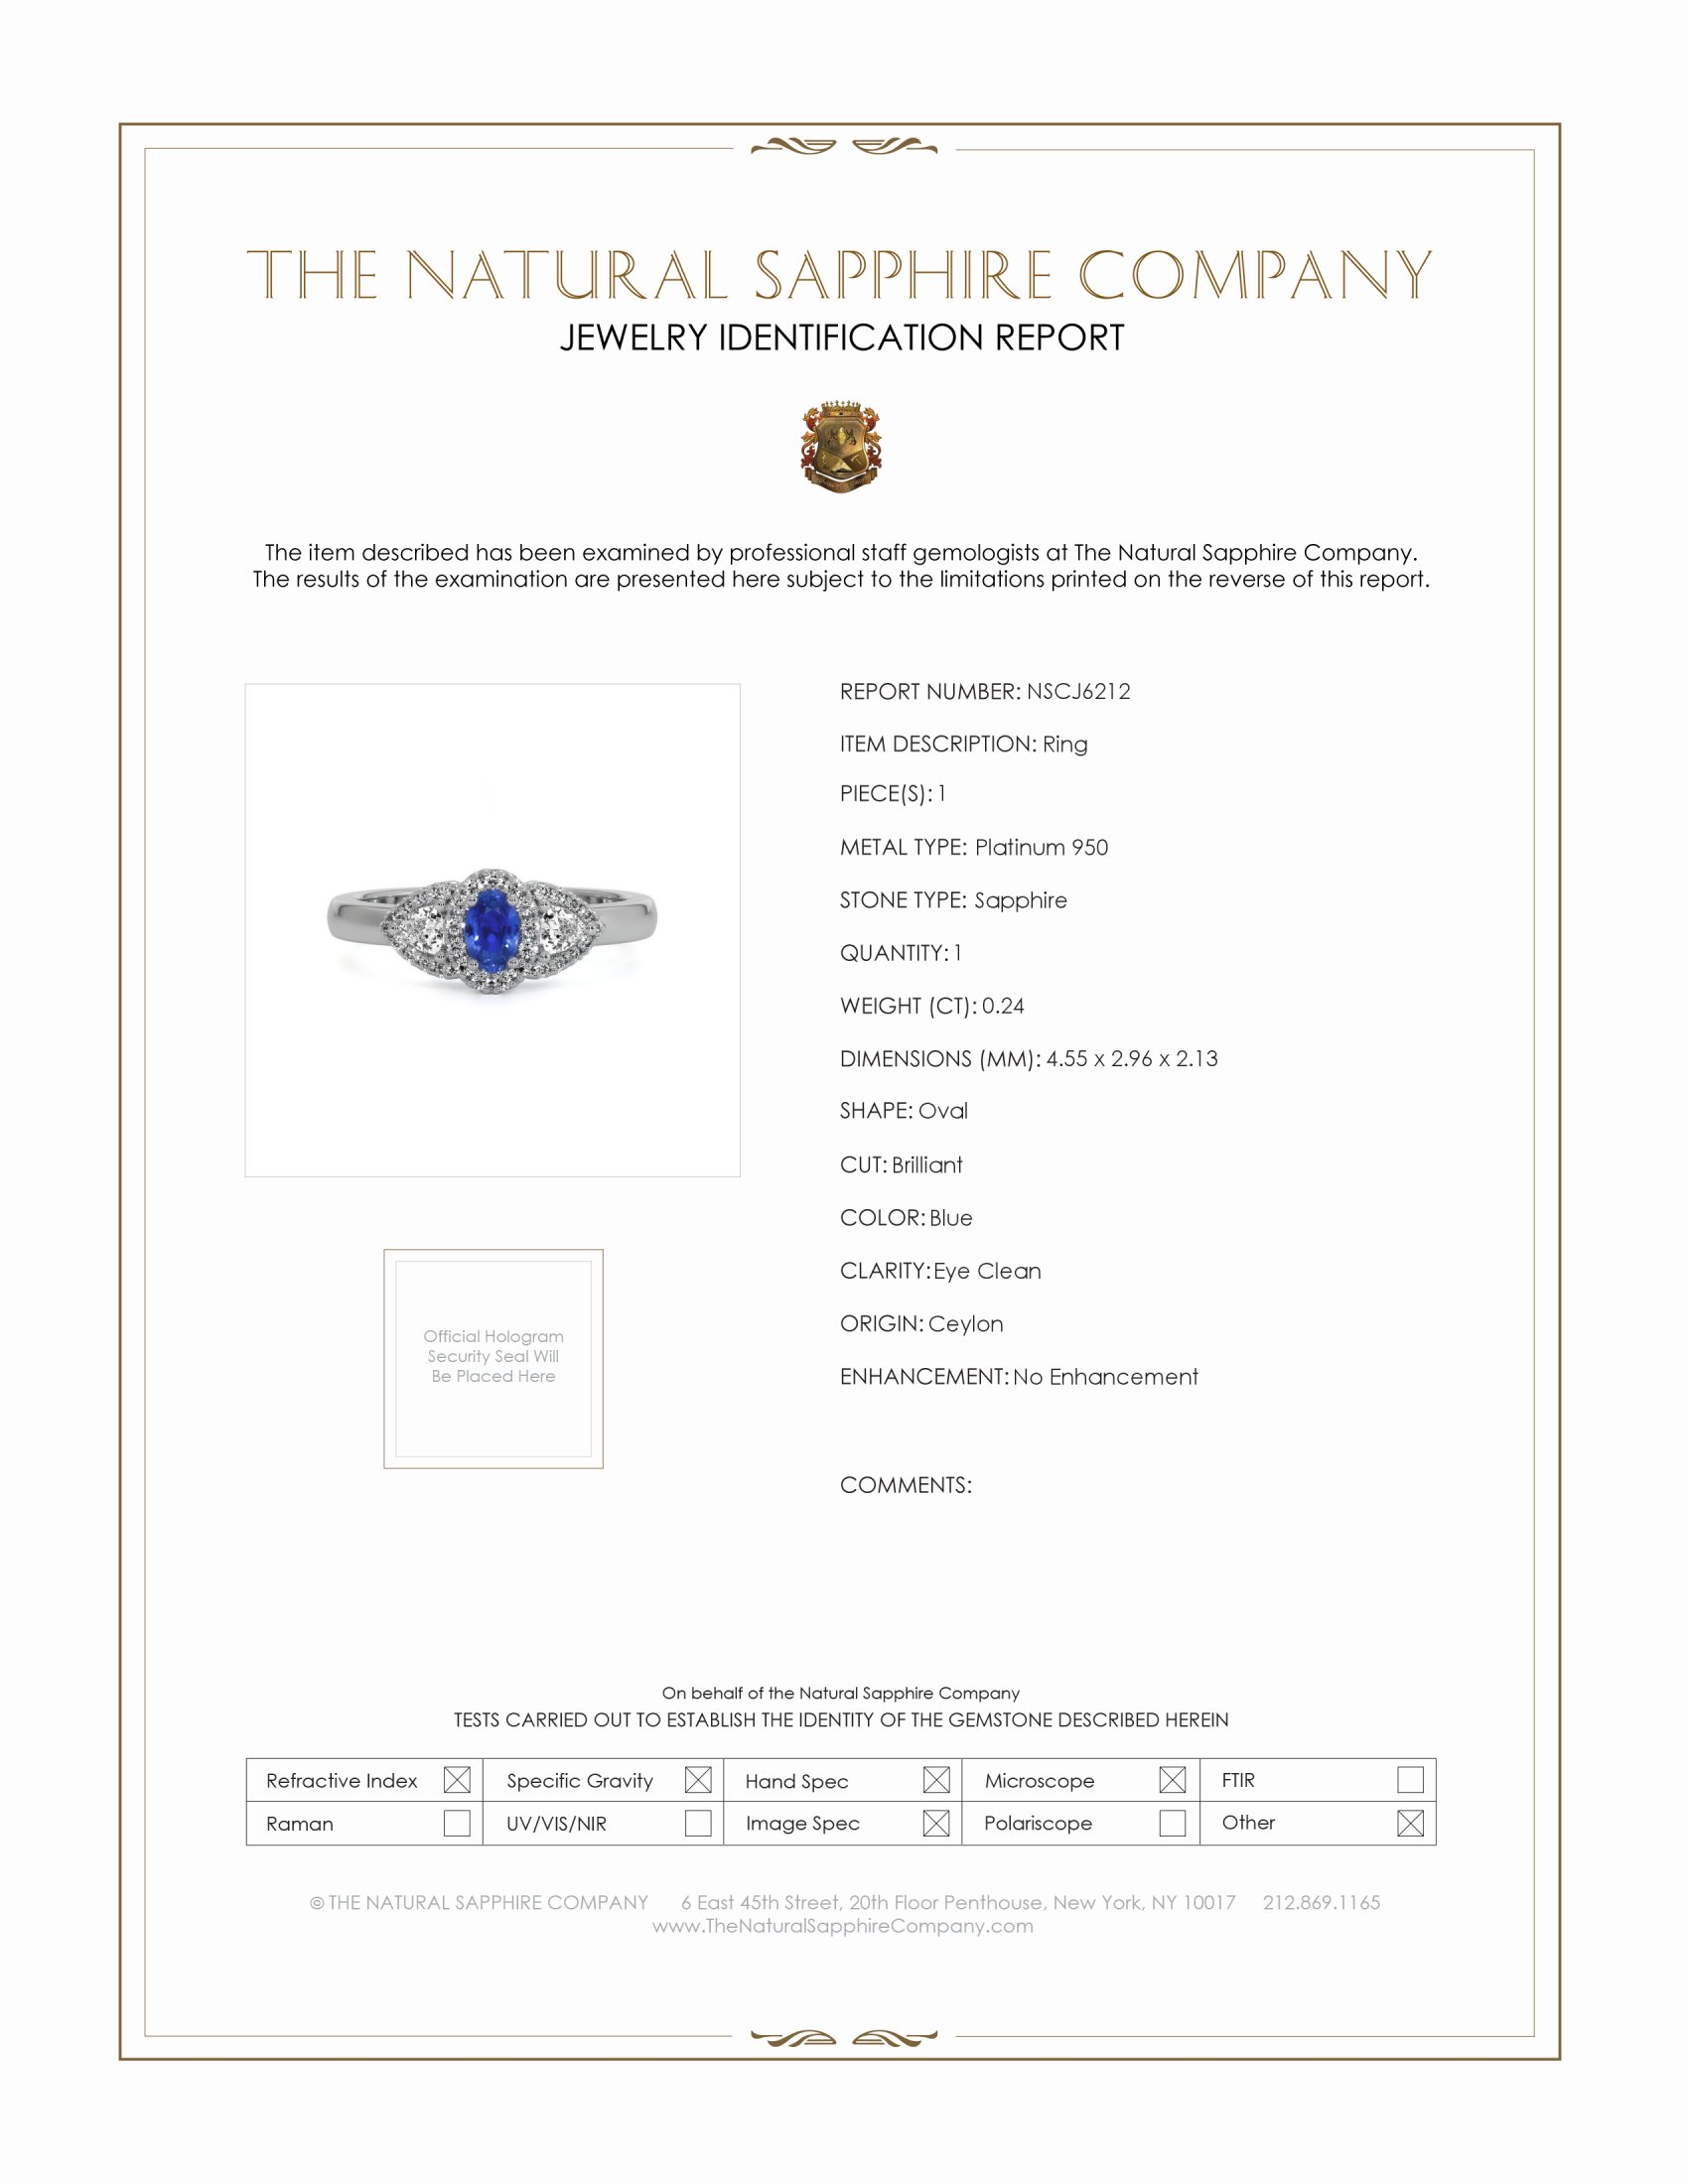 0.24ct Blue Sapphire Ring Certification